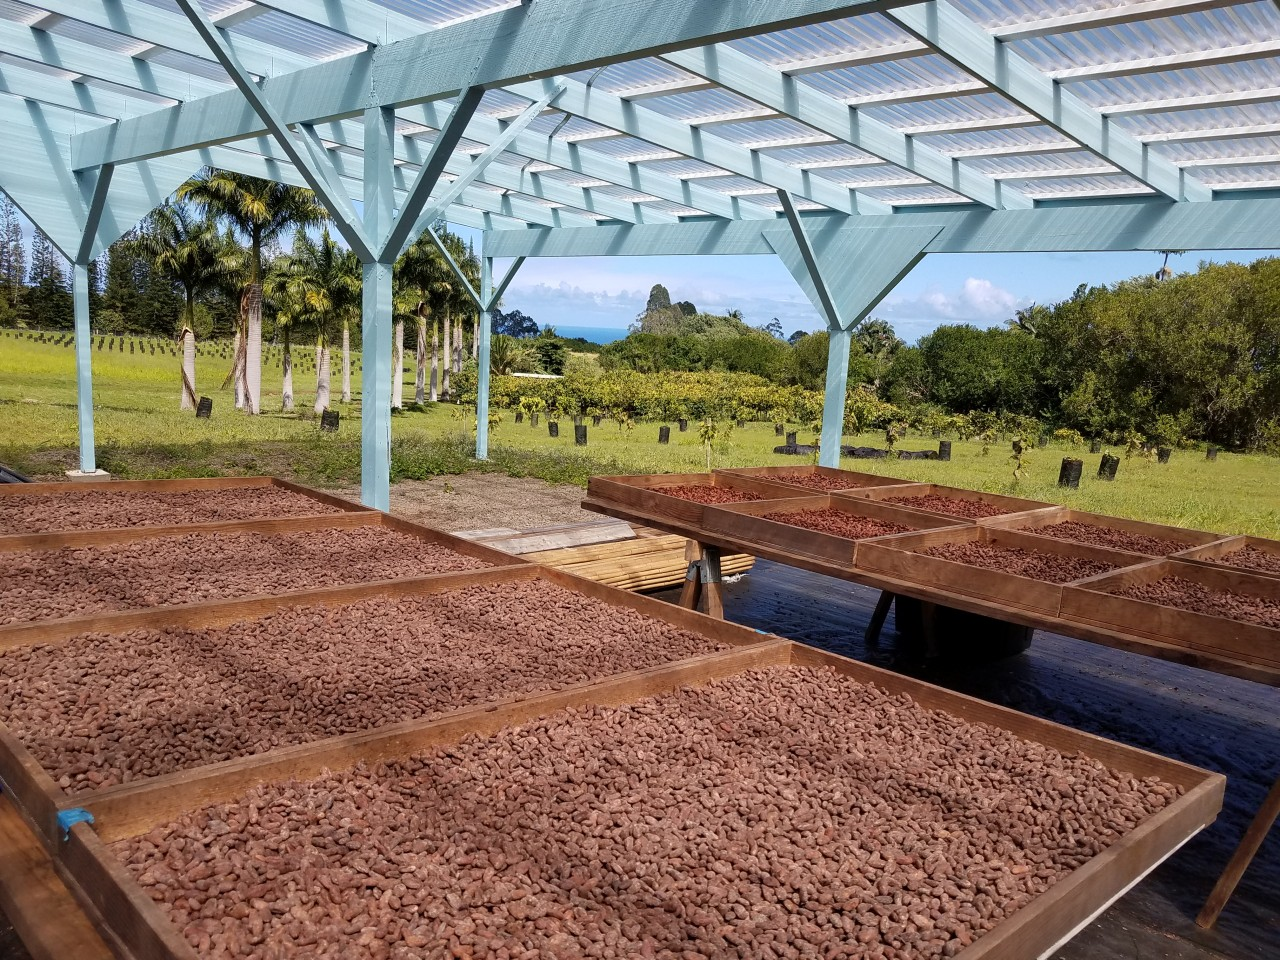 Drying Cacao and Mauna Kea Cacao's Farm